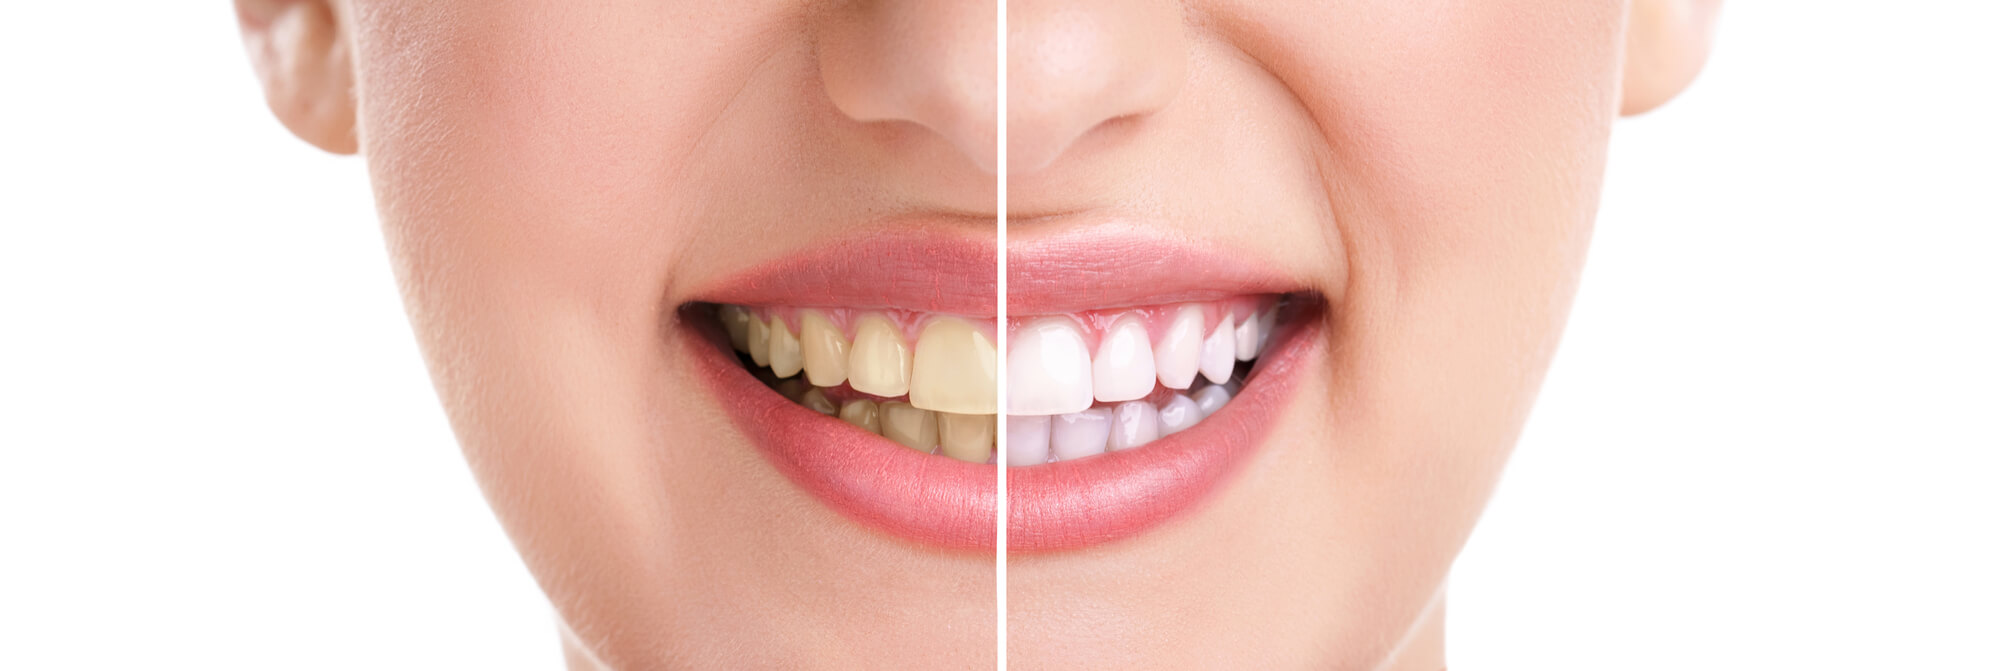 Where can I find teeth whitening in Miami?